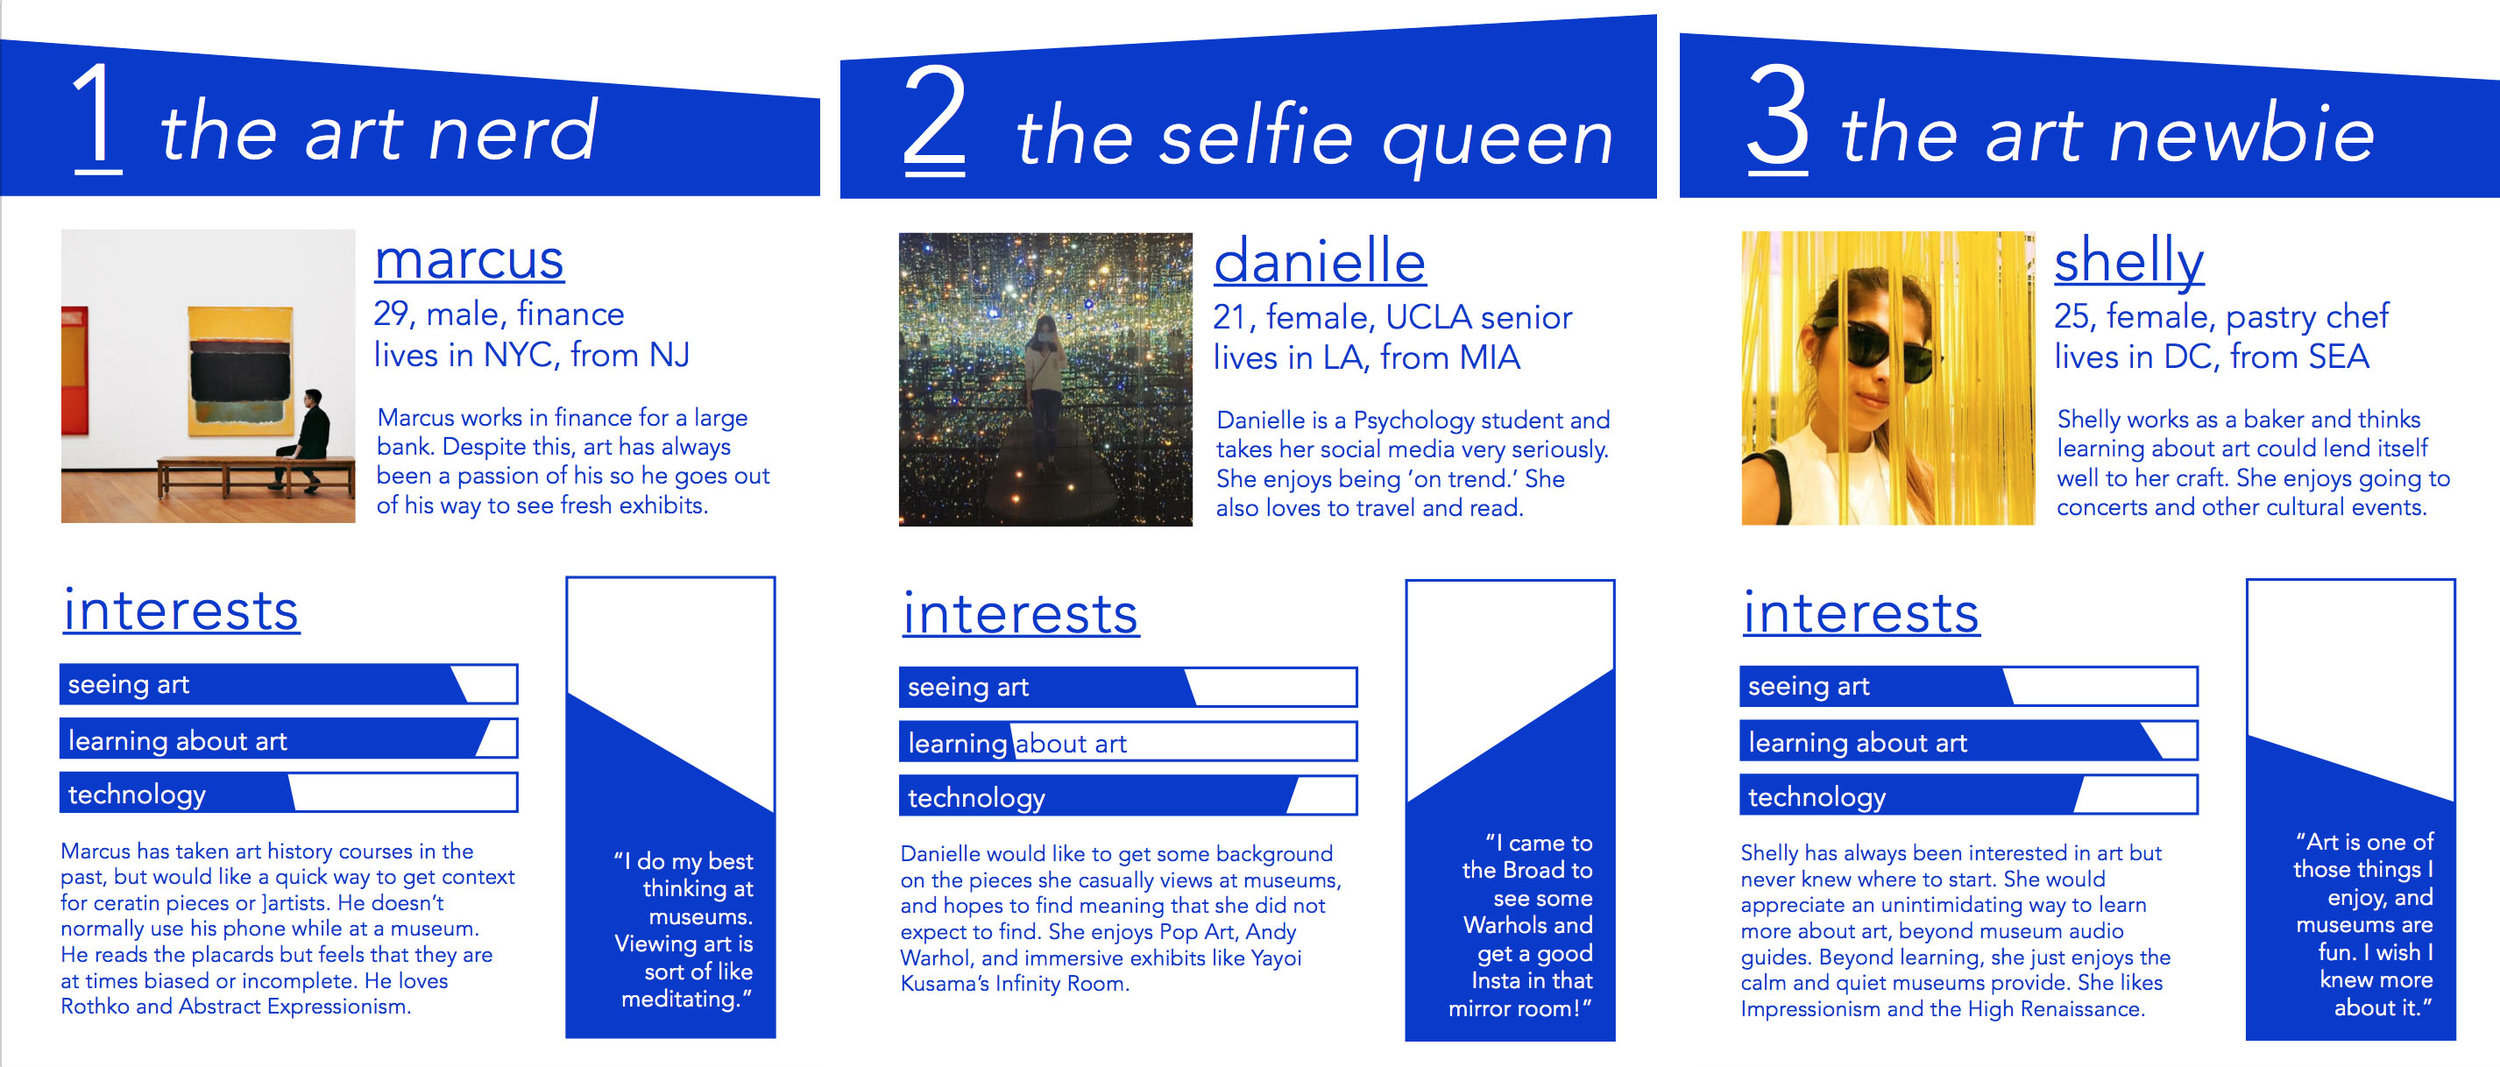 These user personas represent types of people most likely to use a museum application, from art aficionados to the selfie-obsessed. Their backgrounds, interest in art and quotes highlight user motivations and desires.